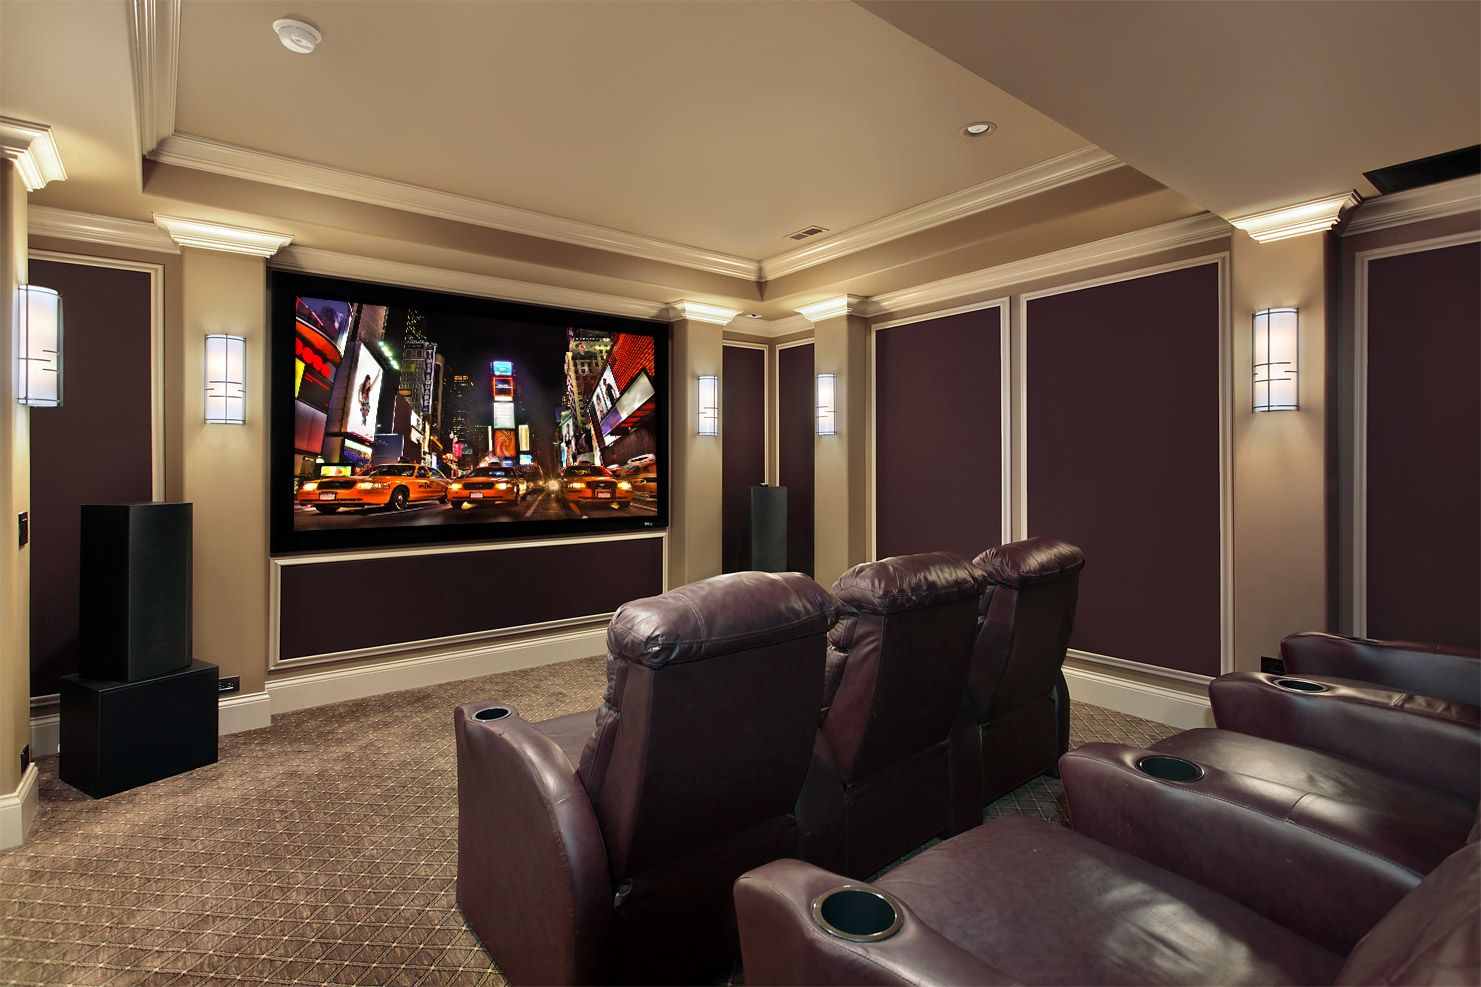 Home Theater Design Houston Property Classy Home Theater Installation Houston  Home Cinema Installers Inspiration Design